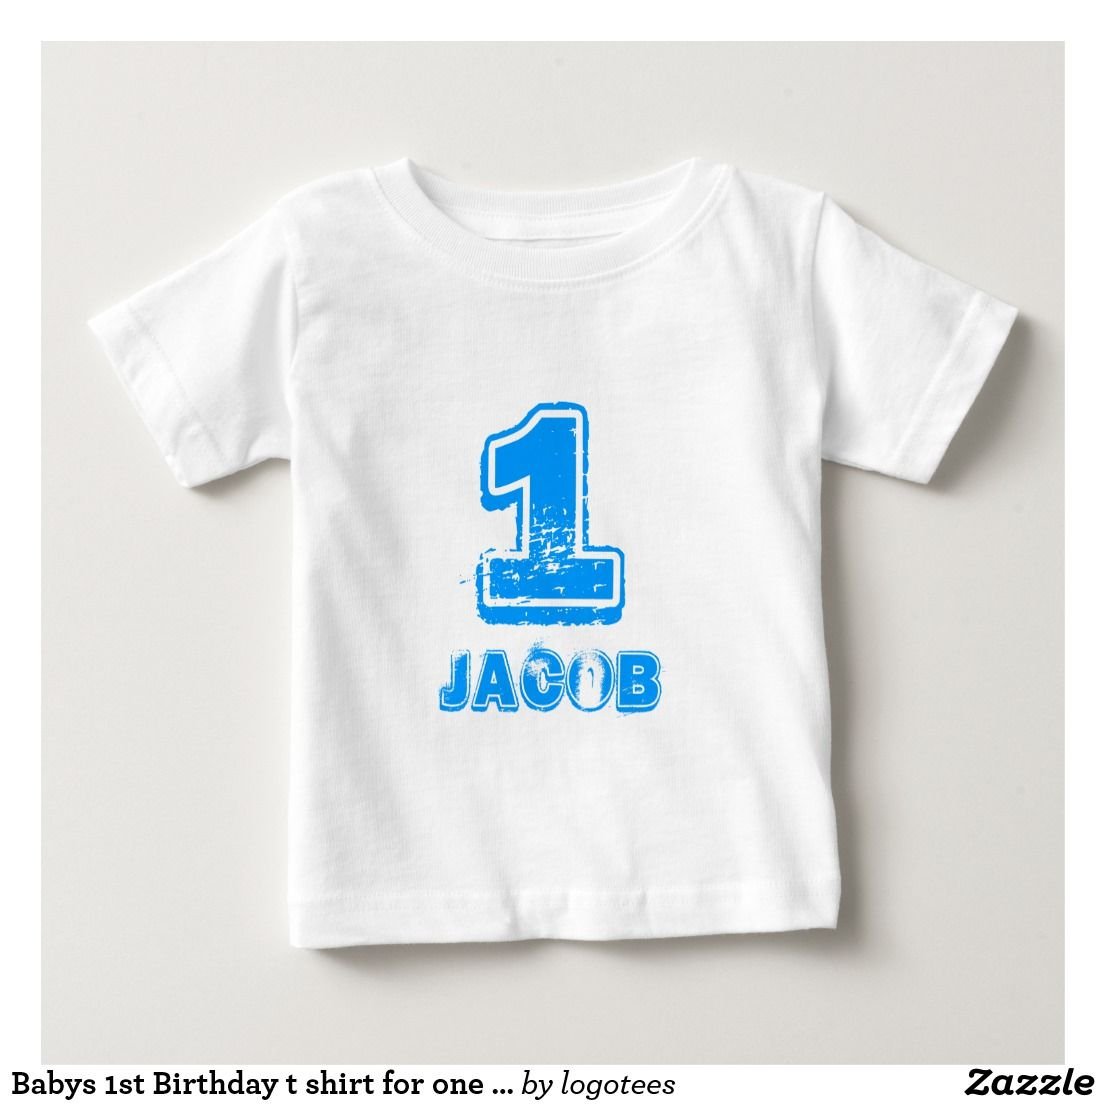 Babys 1st Birthday t shirt for one year old boy Zazzle